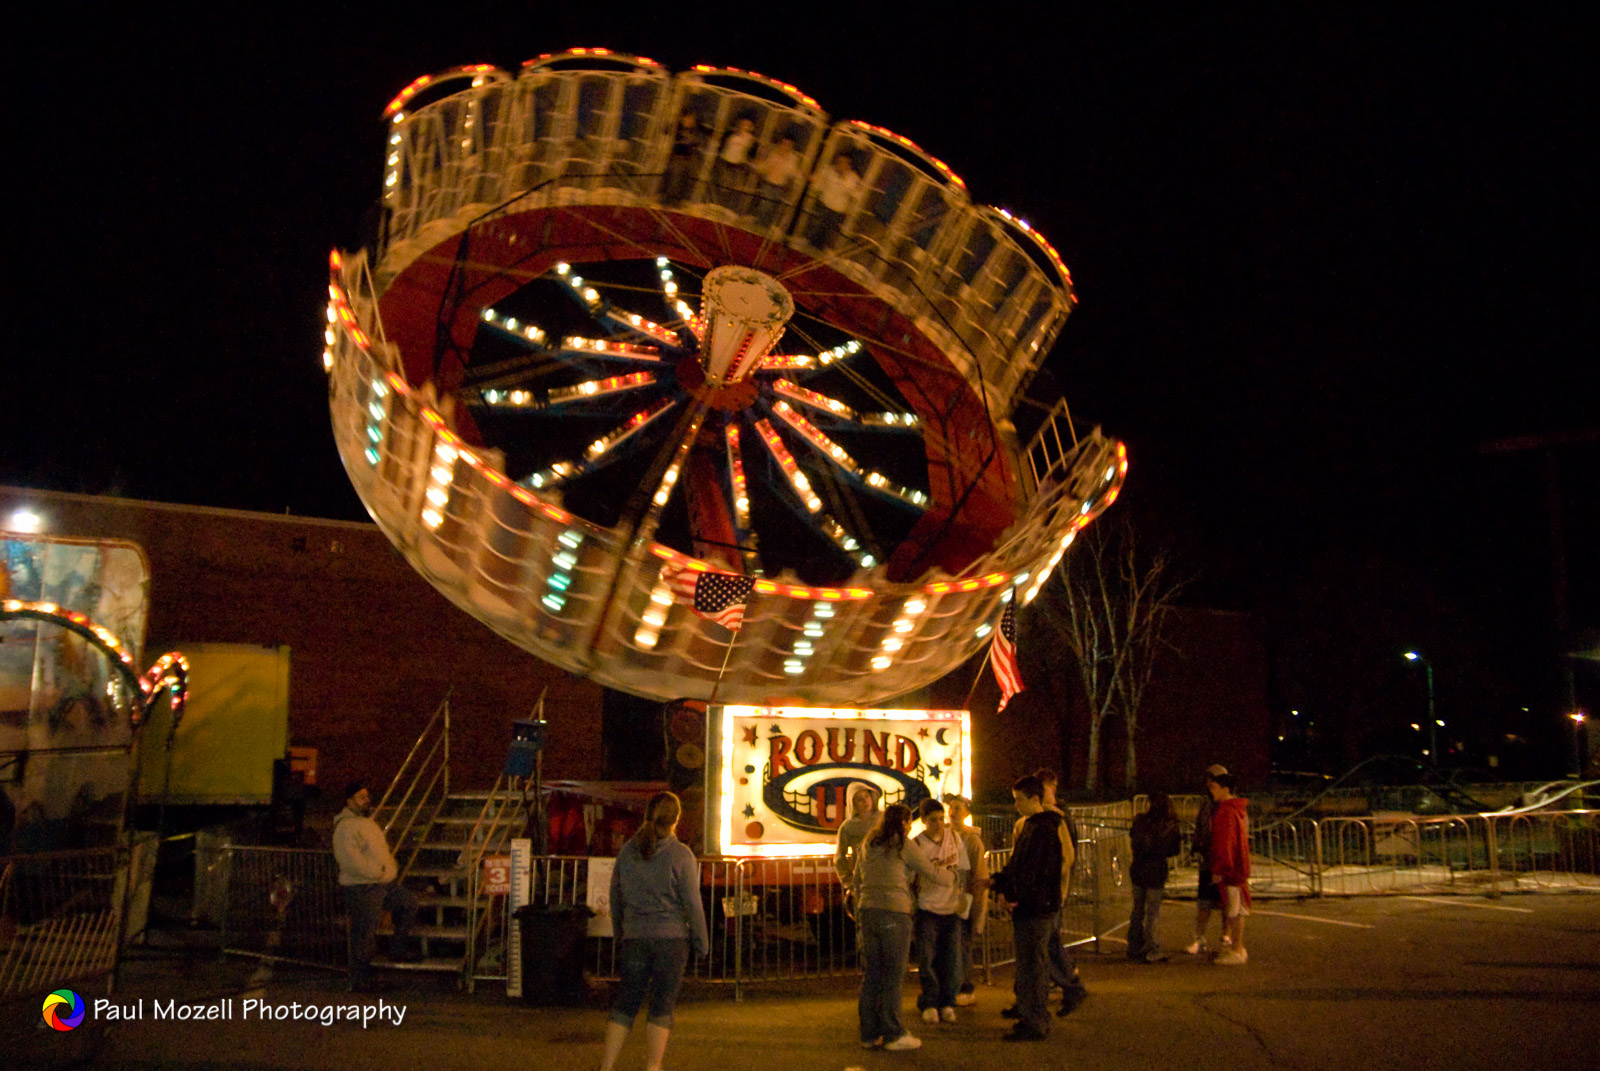 Teenagerrs at a small-town carnival at night.